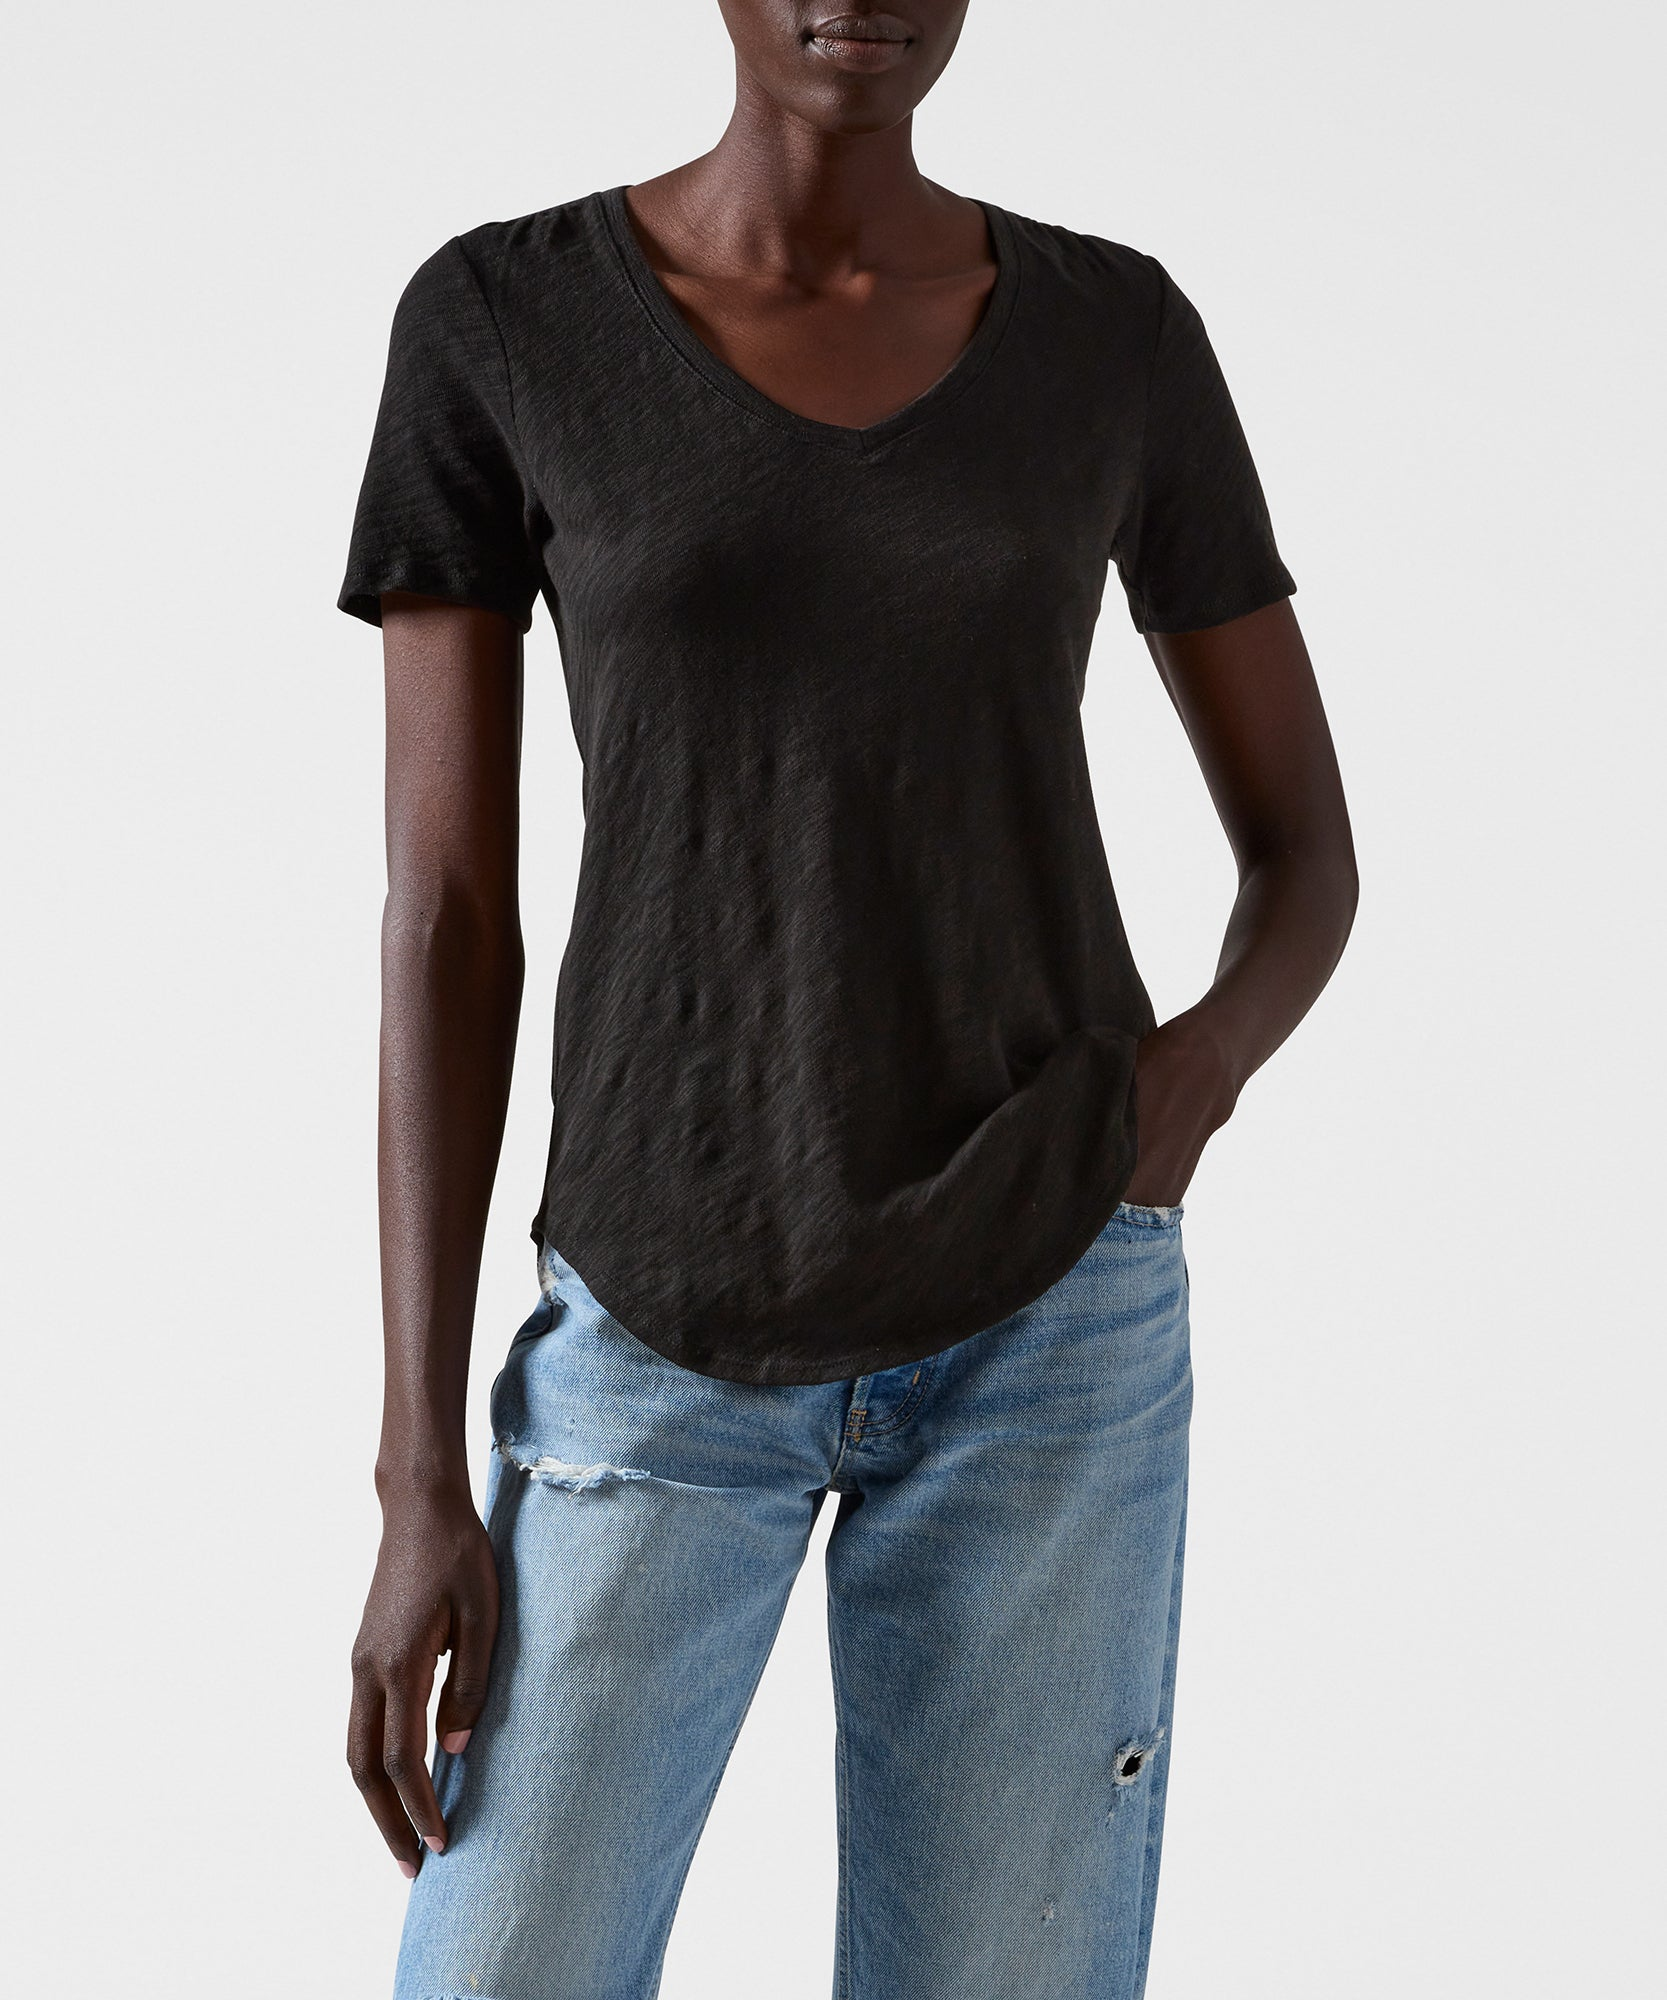 Black Slub Jersey V-Neck Tee - Women's Cotton Short Sleeve Tee by ATM Anthony Thomas Melillo